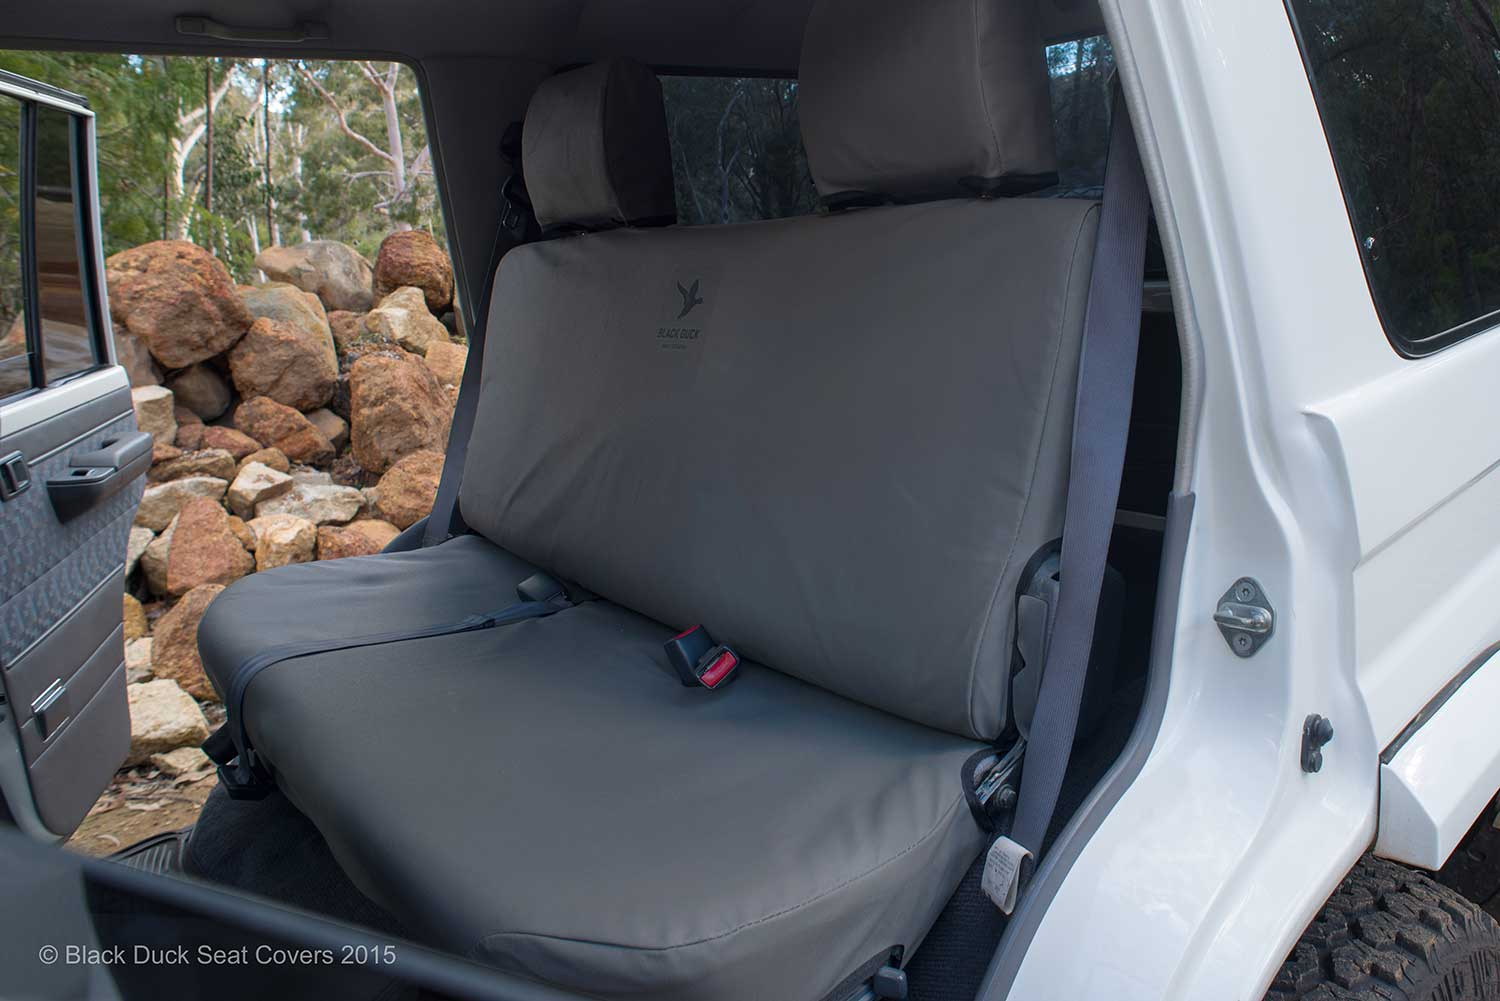 Black Duck Seat Covers To Suit Toyota Troop Carrier Vdj78